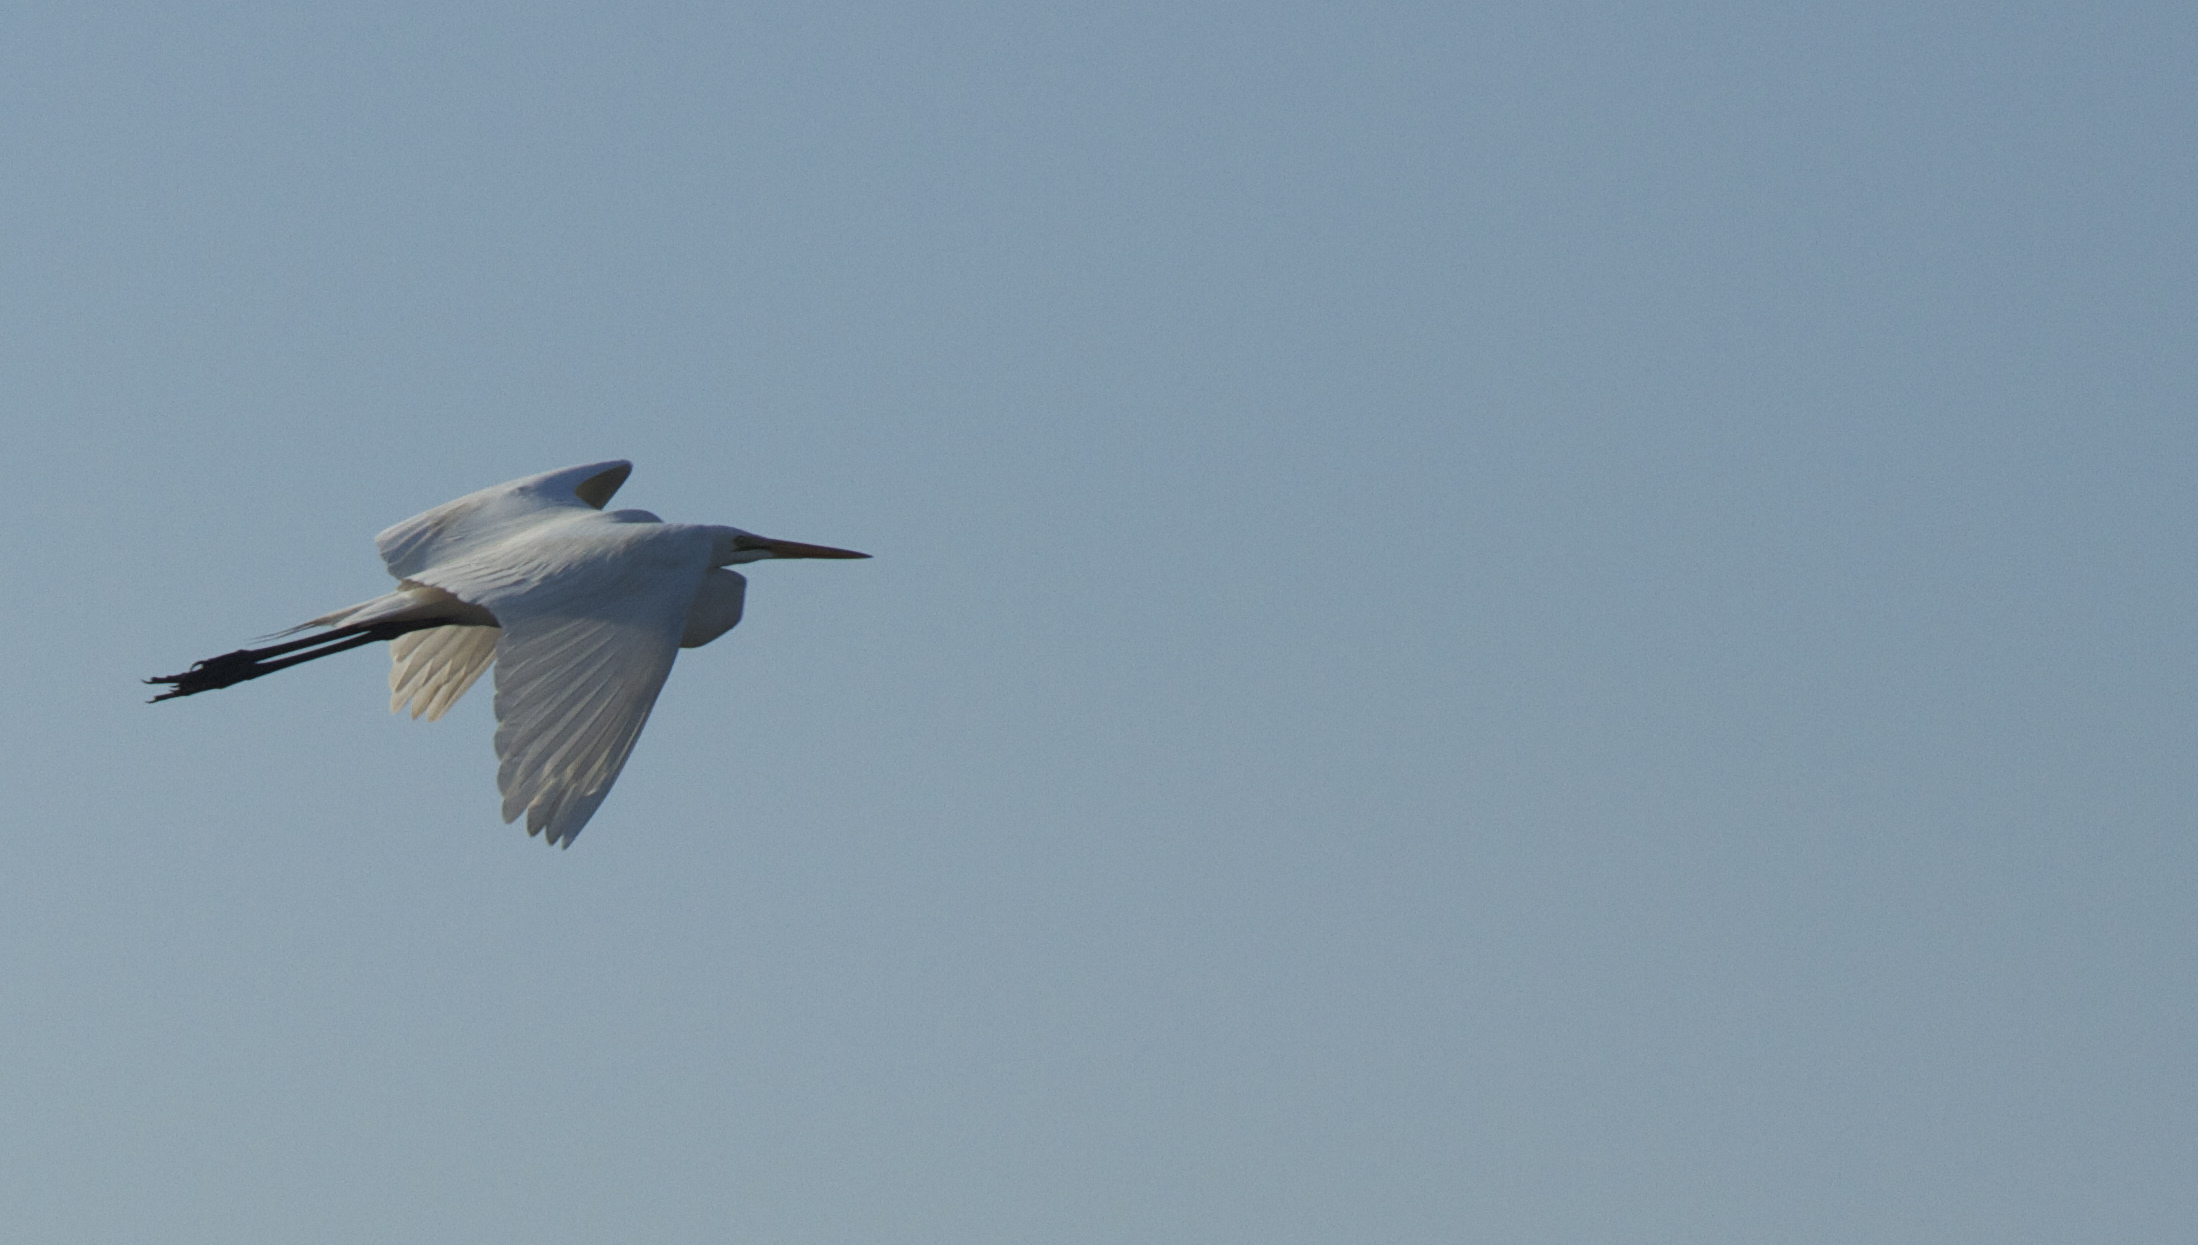 Angel  fly by, a Great Egret